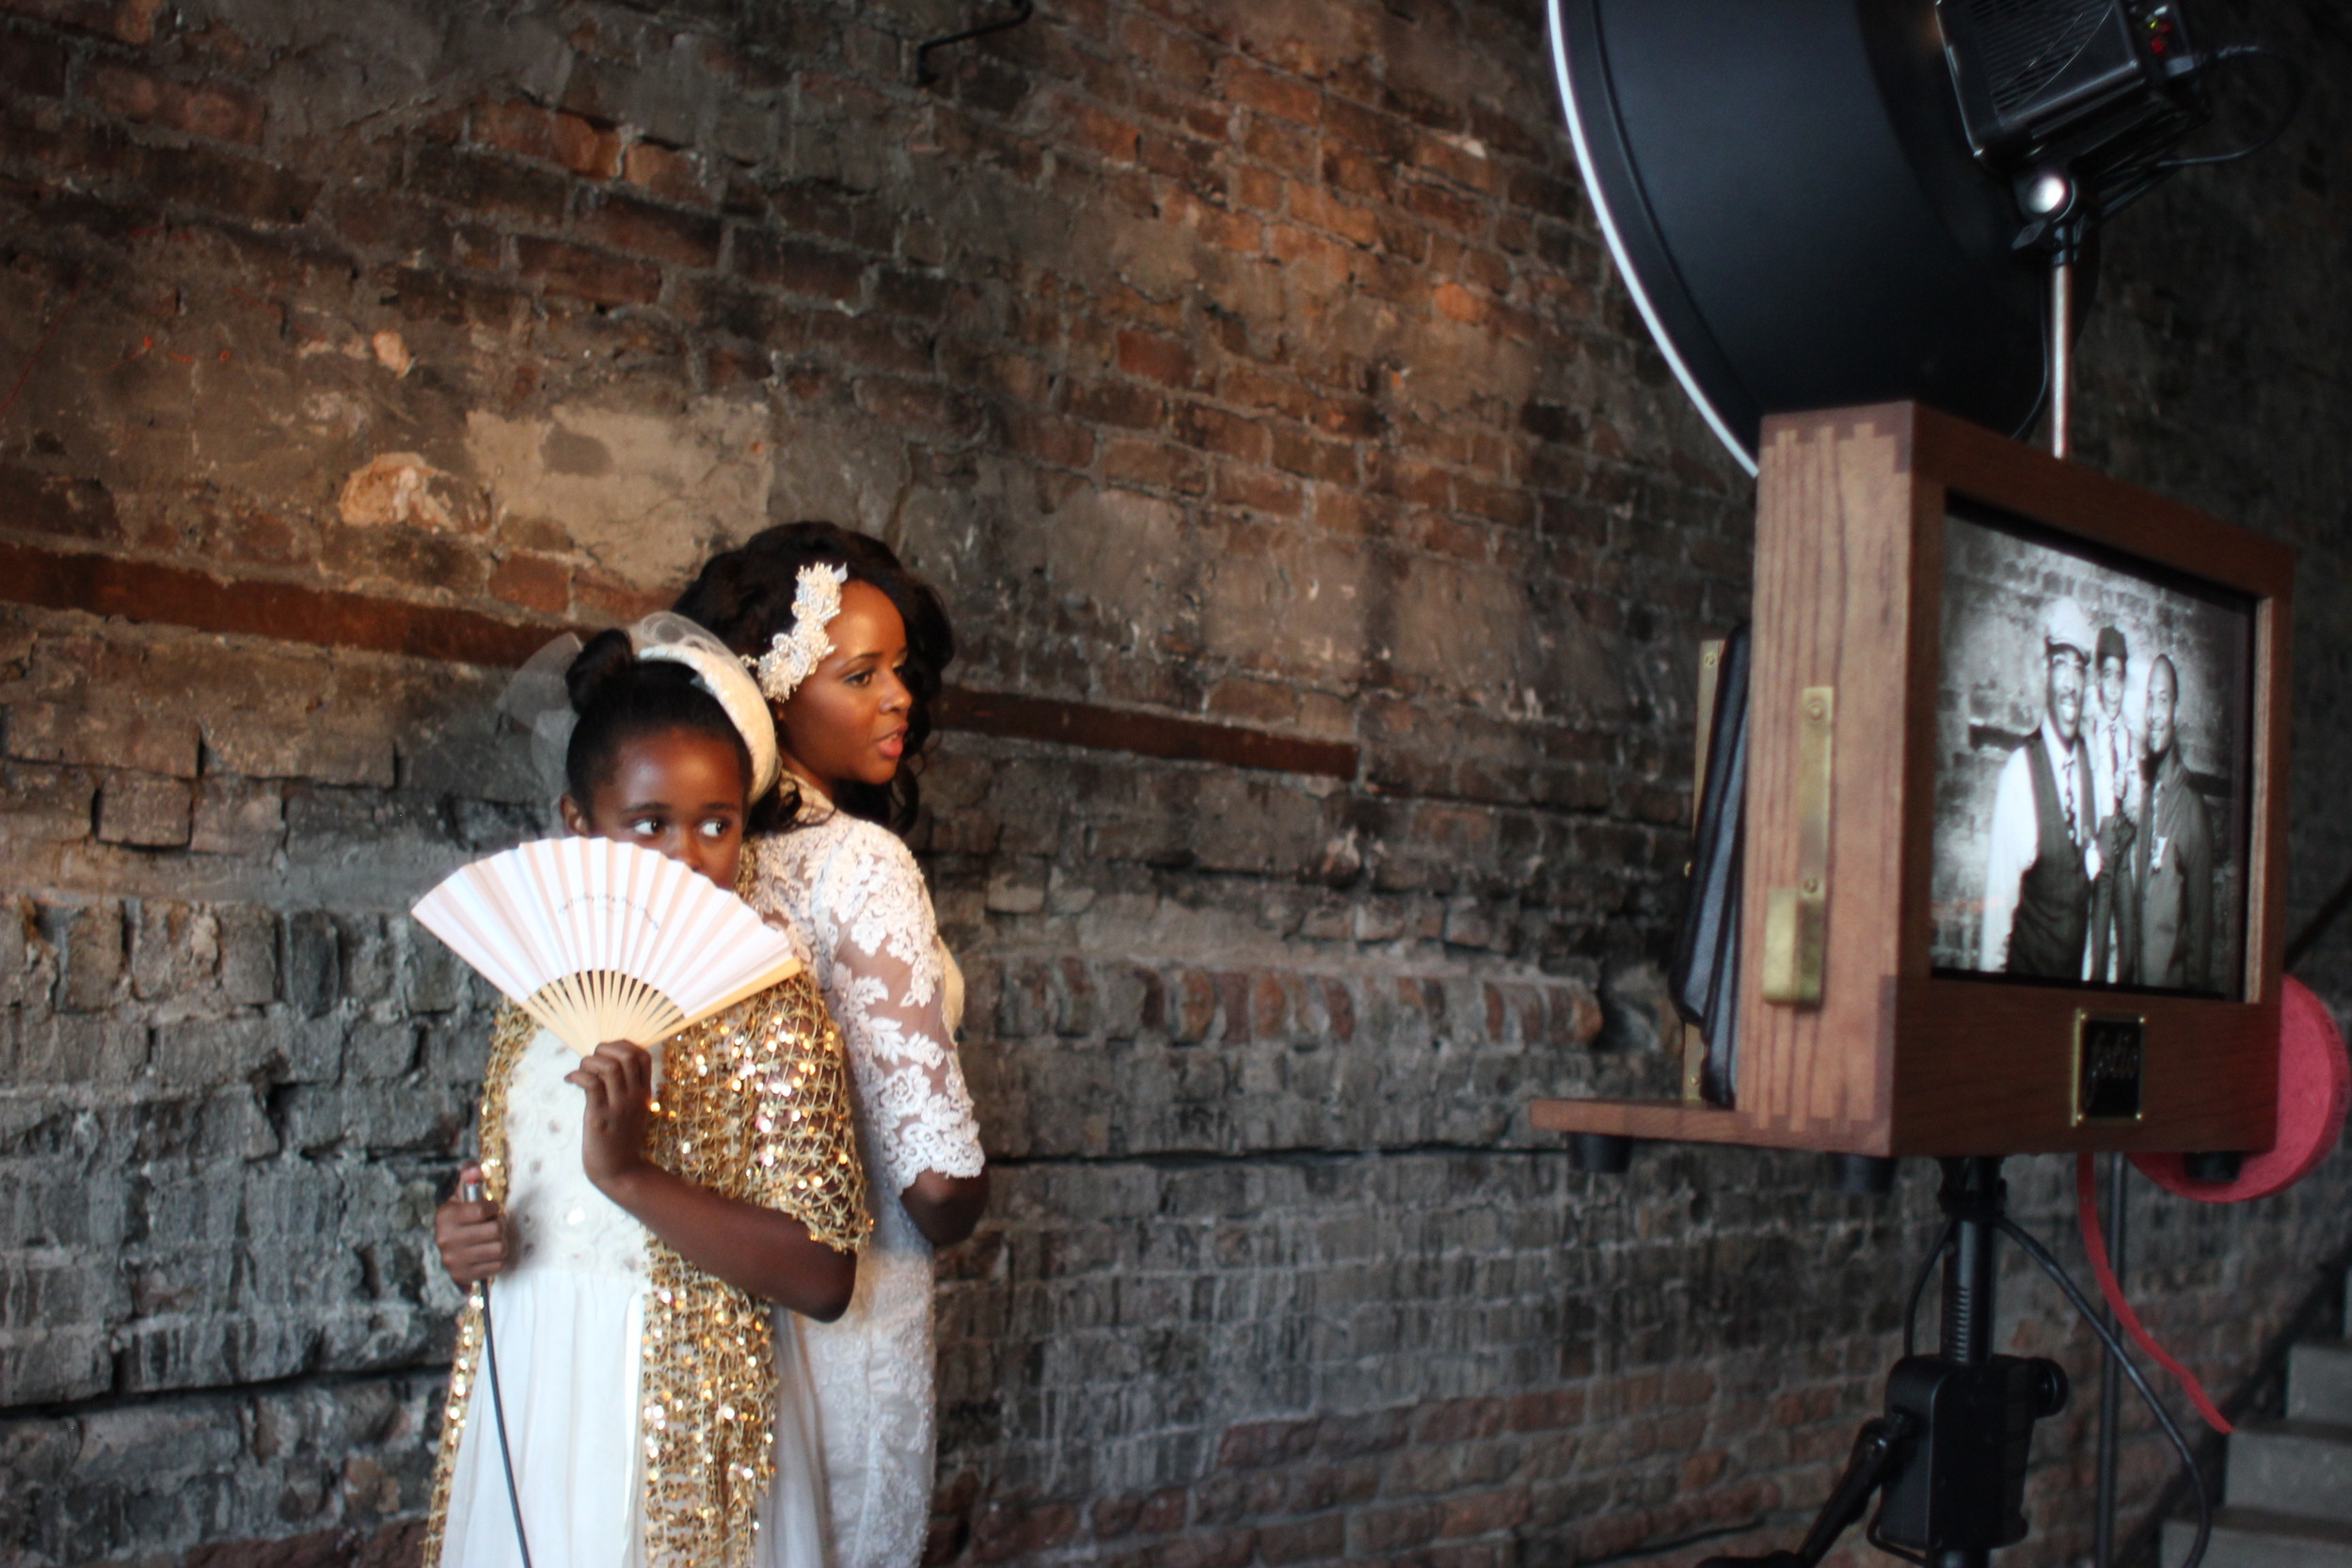 The bride having fun in the photo booth! We love the rustic look of the exposed brick at A New Leaf!